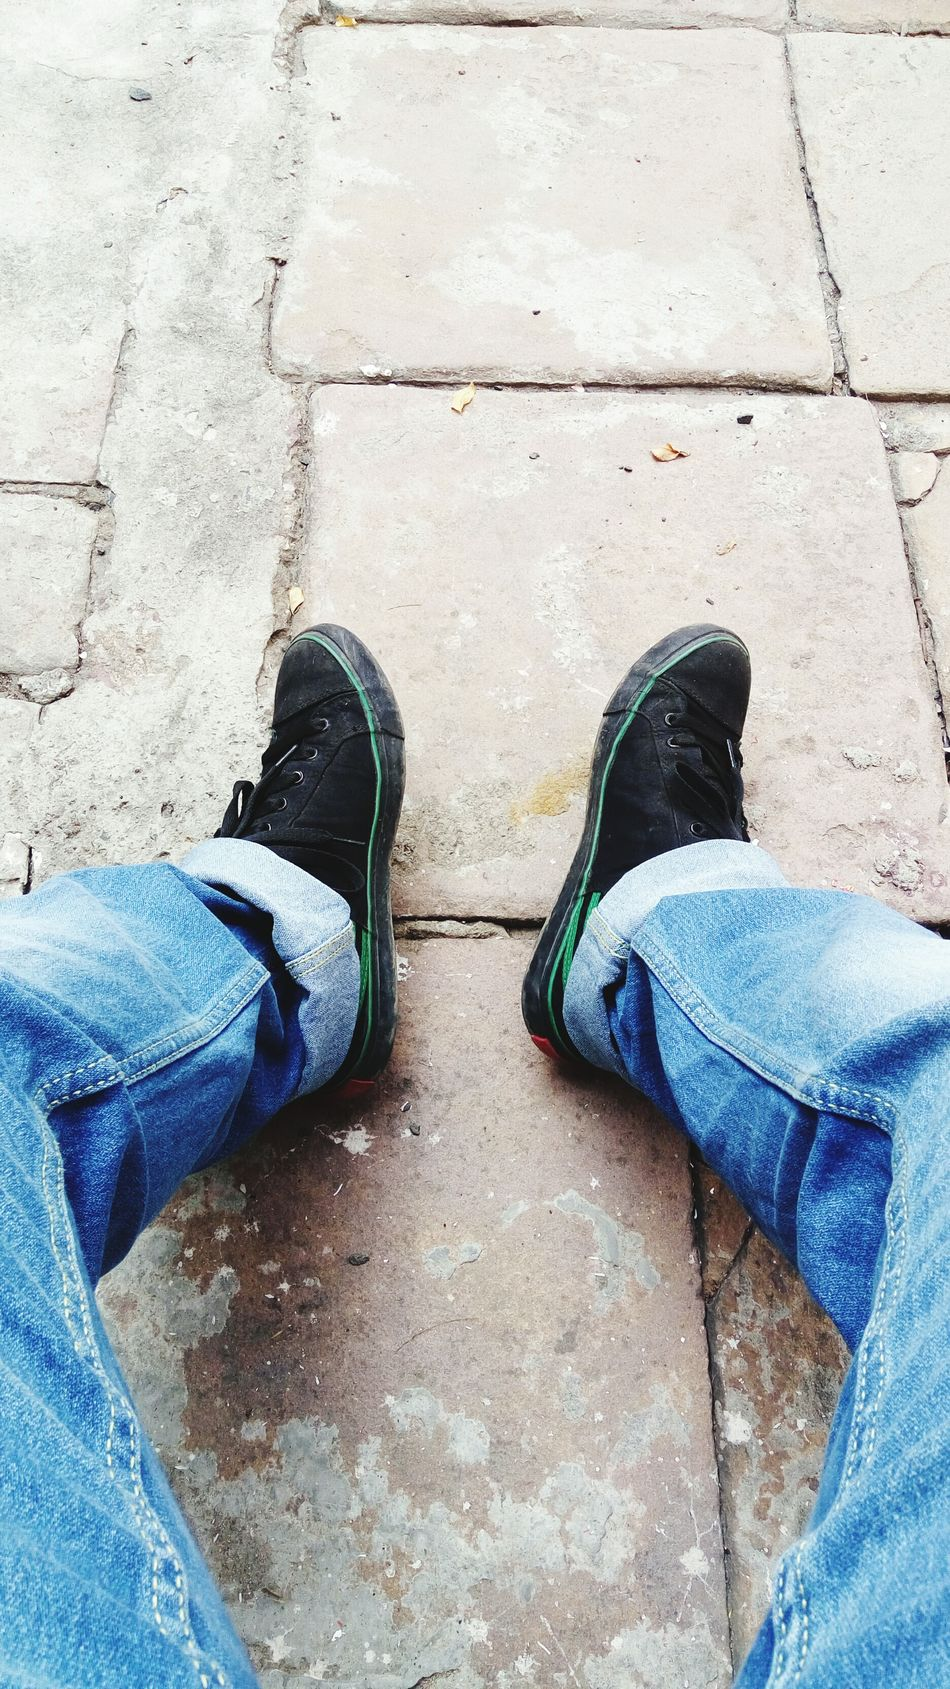 Denim Jeans Rough Day Muddy Shoes Idealism Oneself